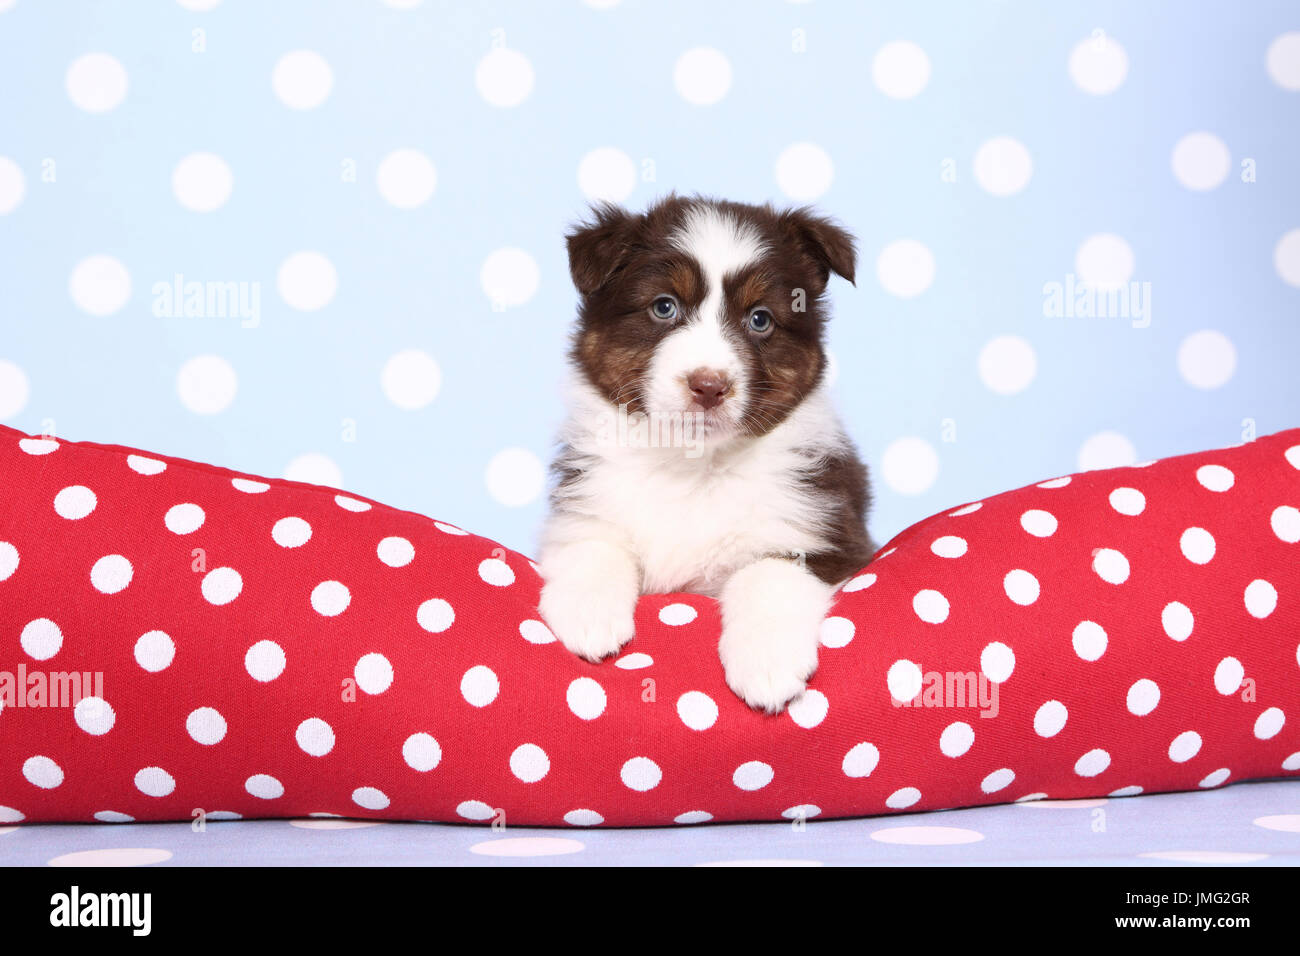 Australian Shepherd. Puppy (6 weeks old) lying on a red cushiont with white polka dots. Studio picture against a blue background with white polka dots. Germany Stock Photo